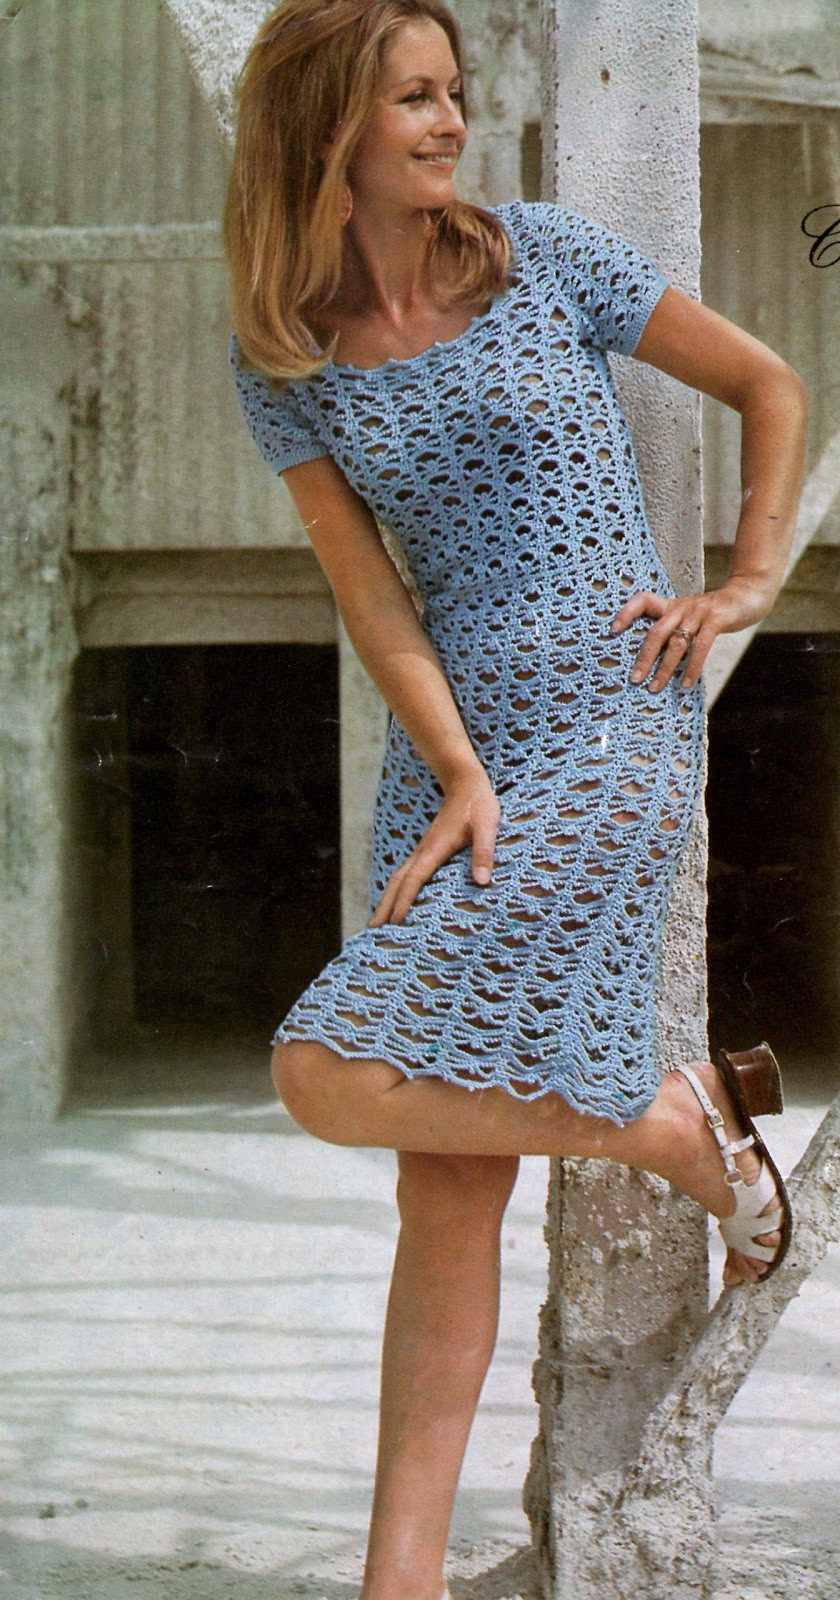 Lovely Vintage Knit N Crochet Instant Downloadable Pattens Crochet Dress Of Awesome 50 Pictures Crochet Dress